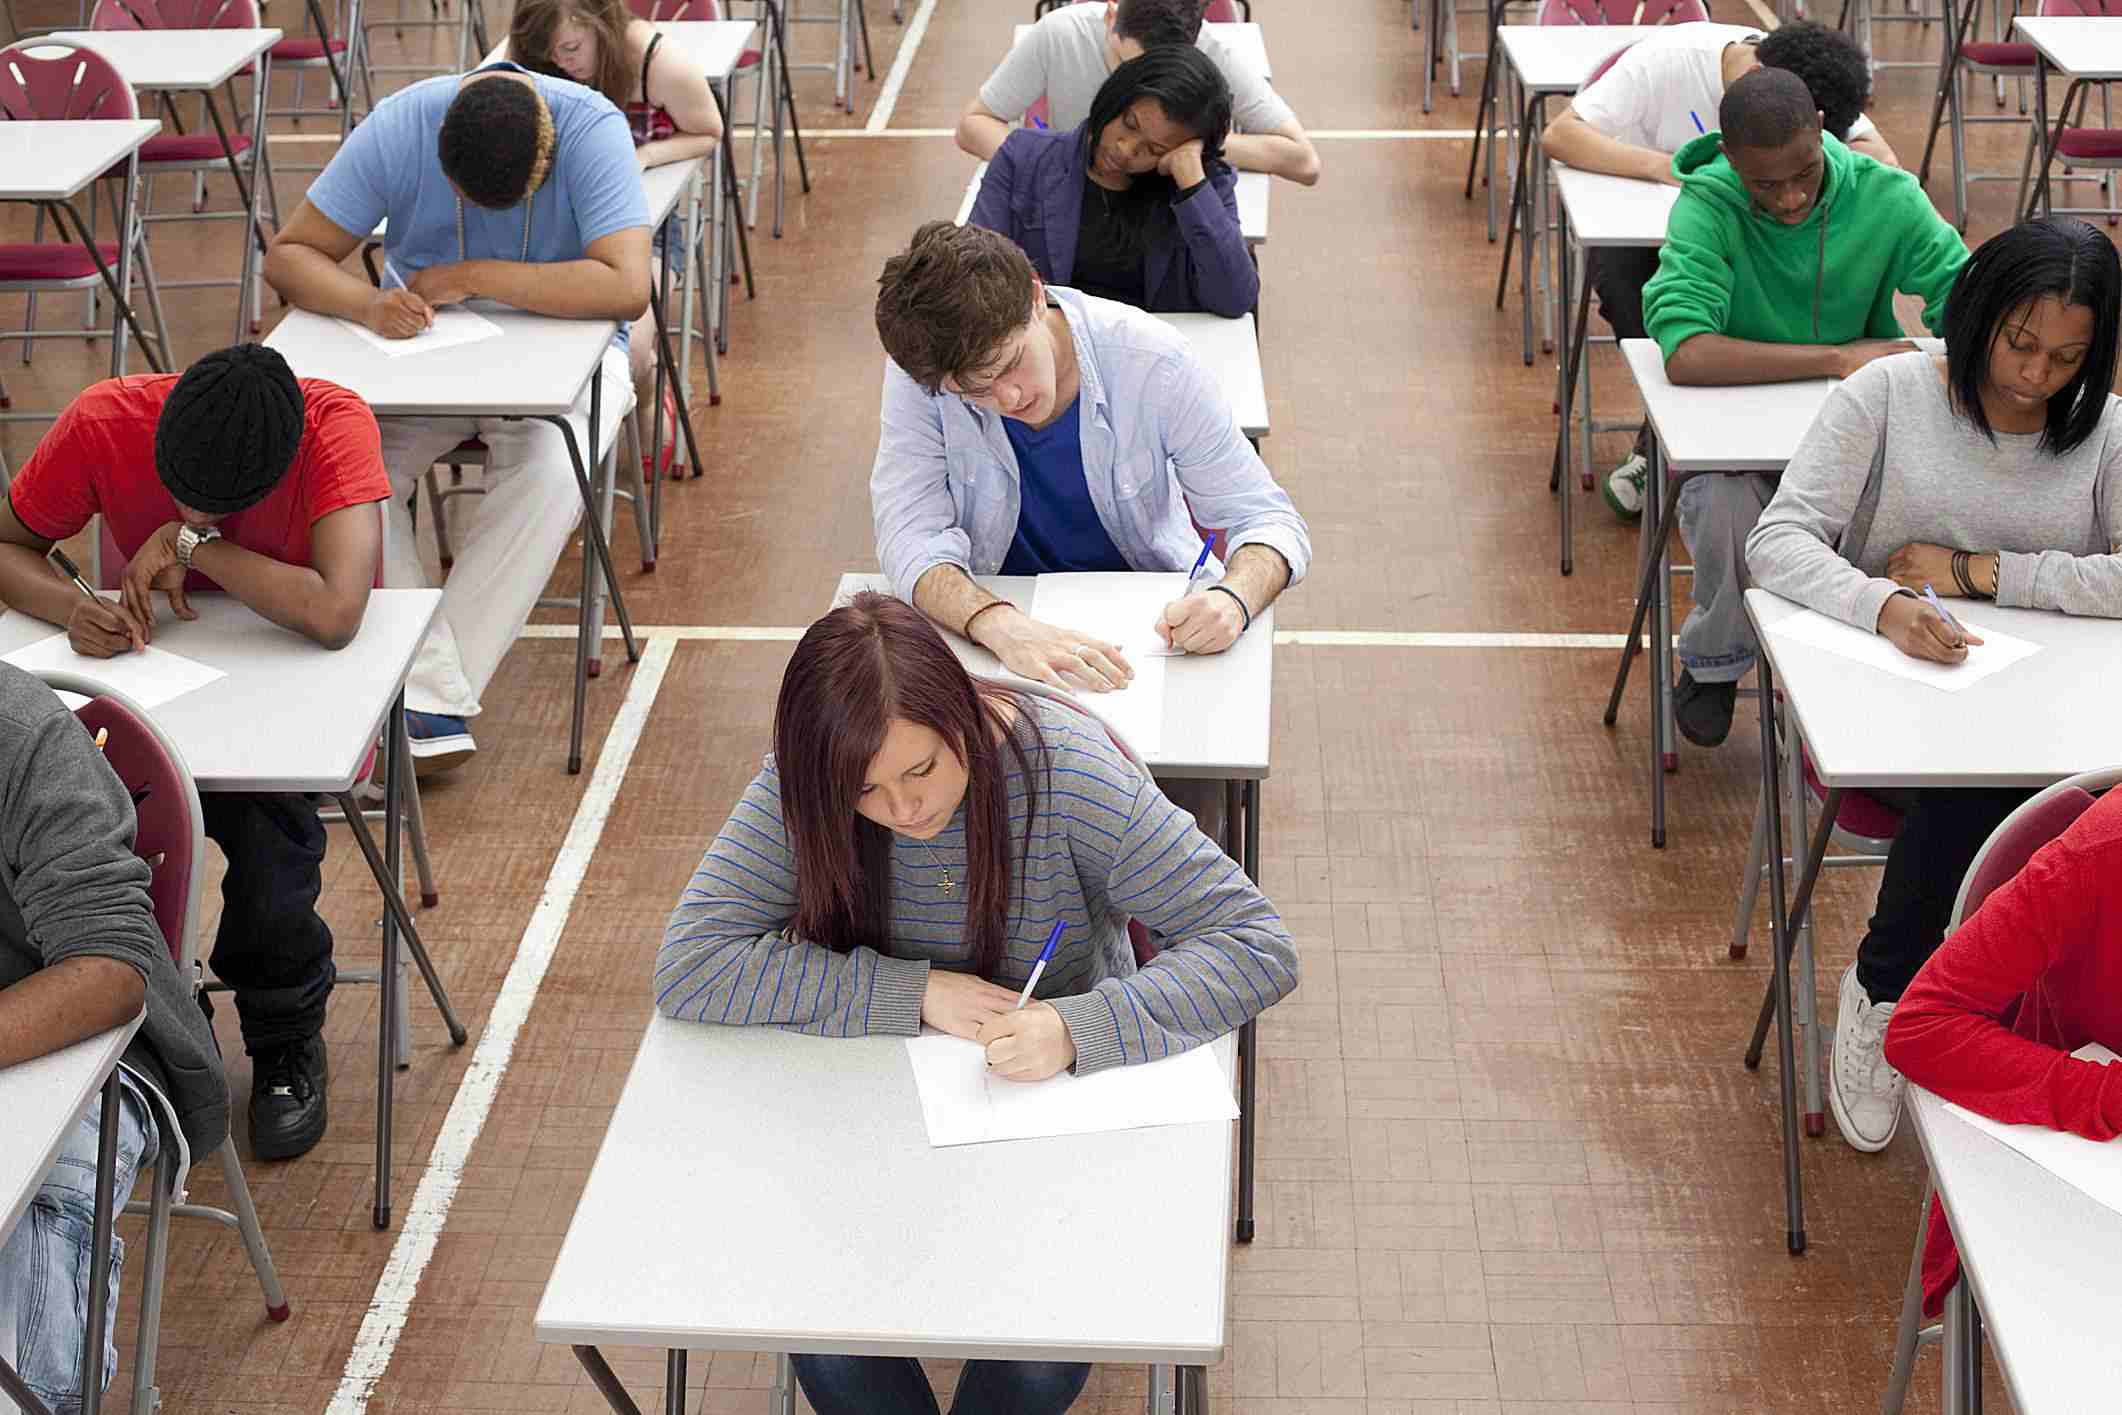 College students taking tests